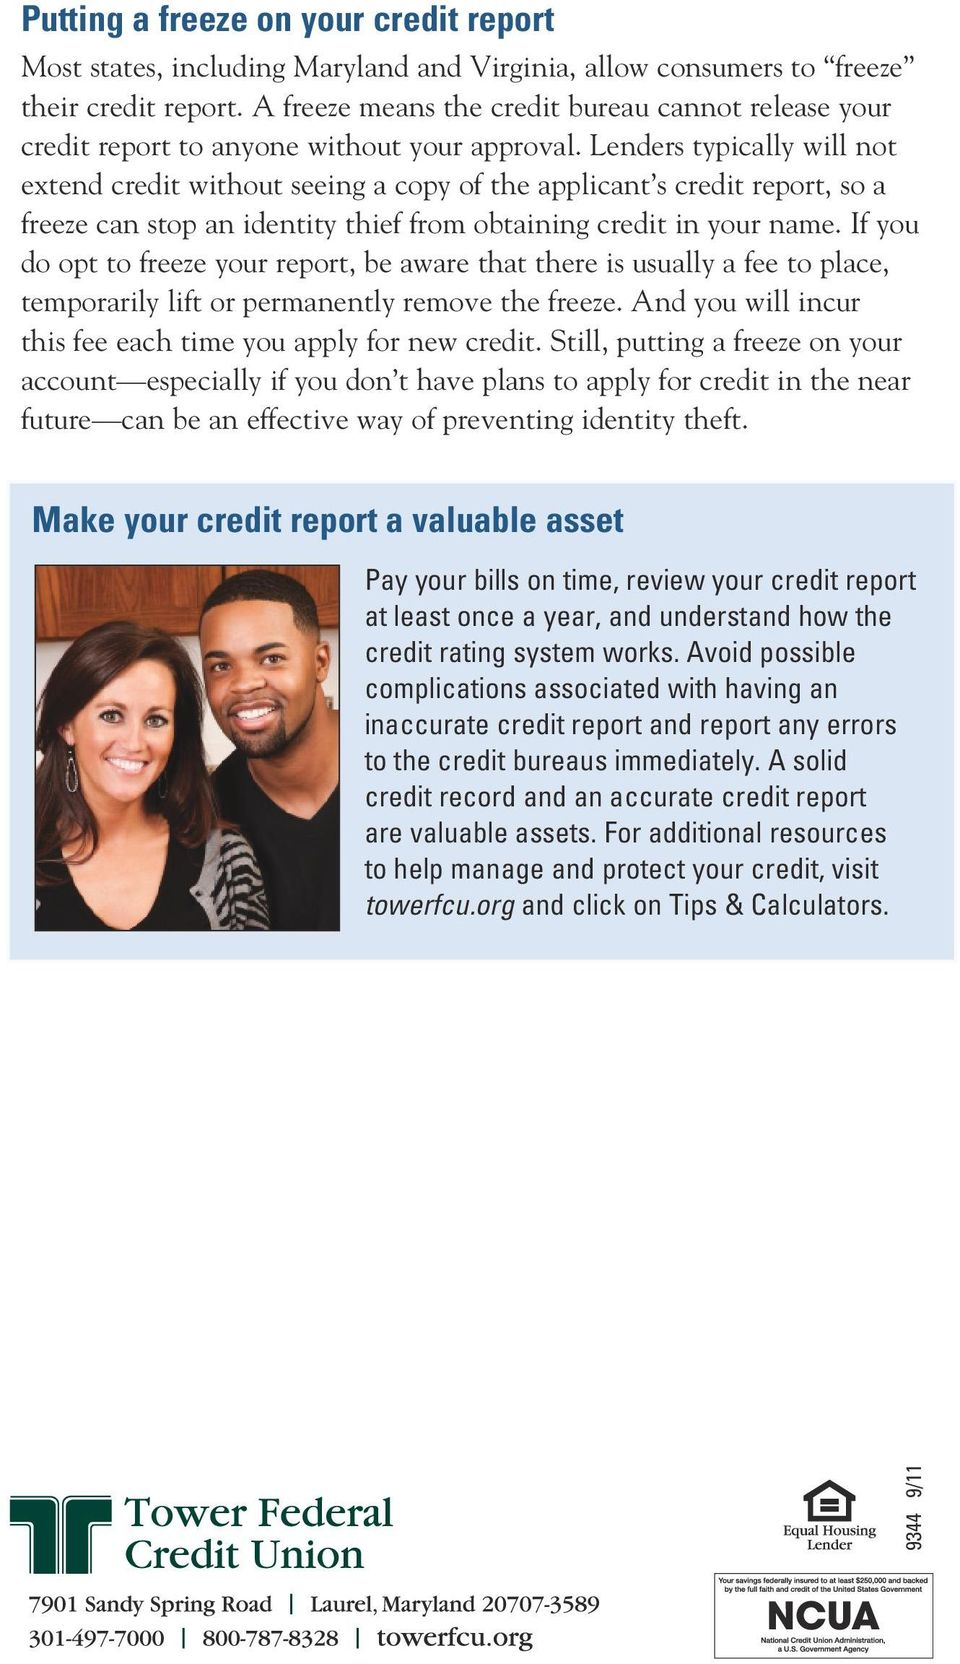 Lenders typically will not extend credit without seeing a copy of the applicant s credit report, so a freeze can stop an identity thief from obtaining credit in your name.